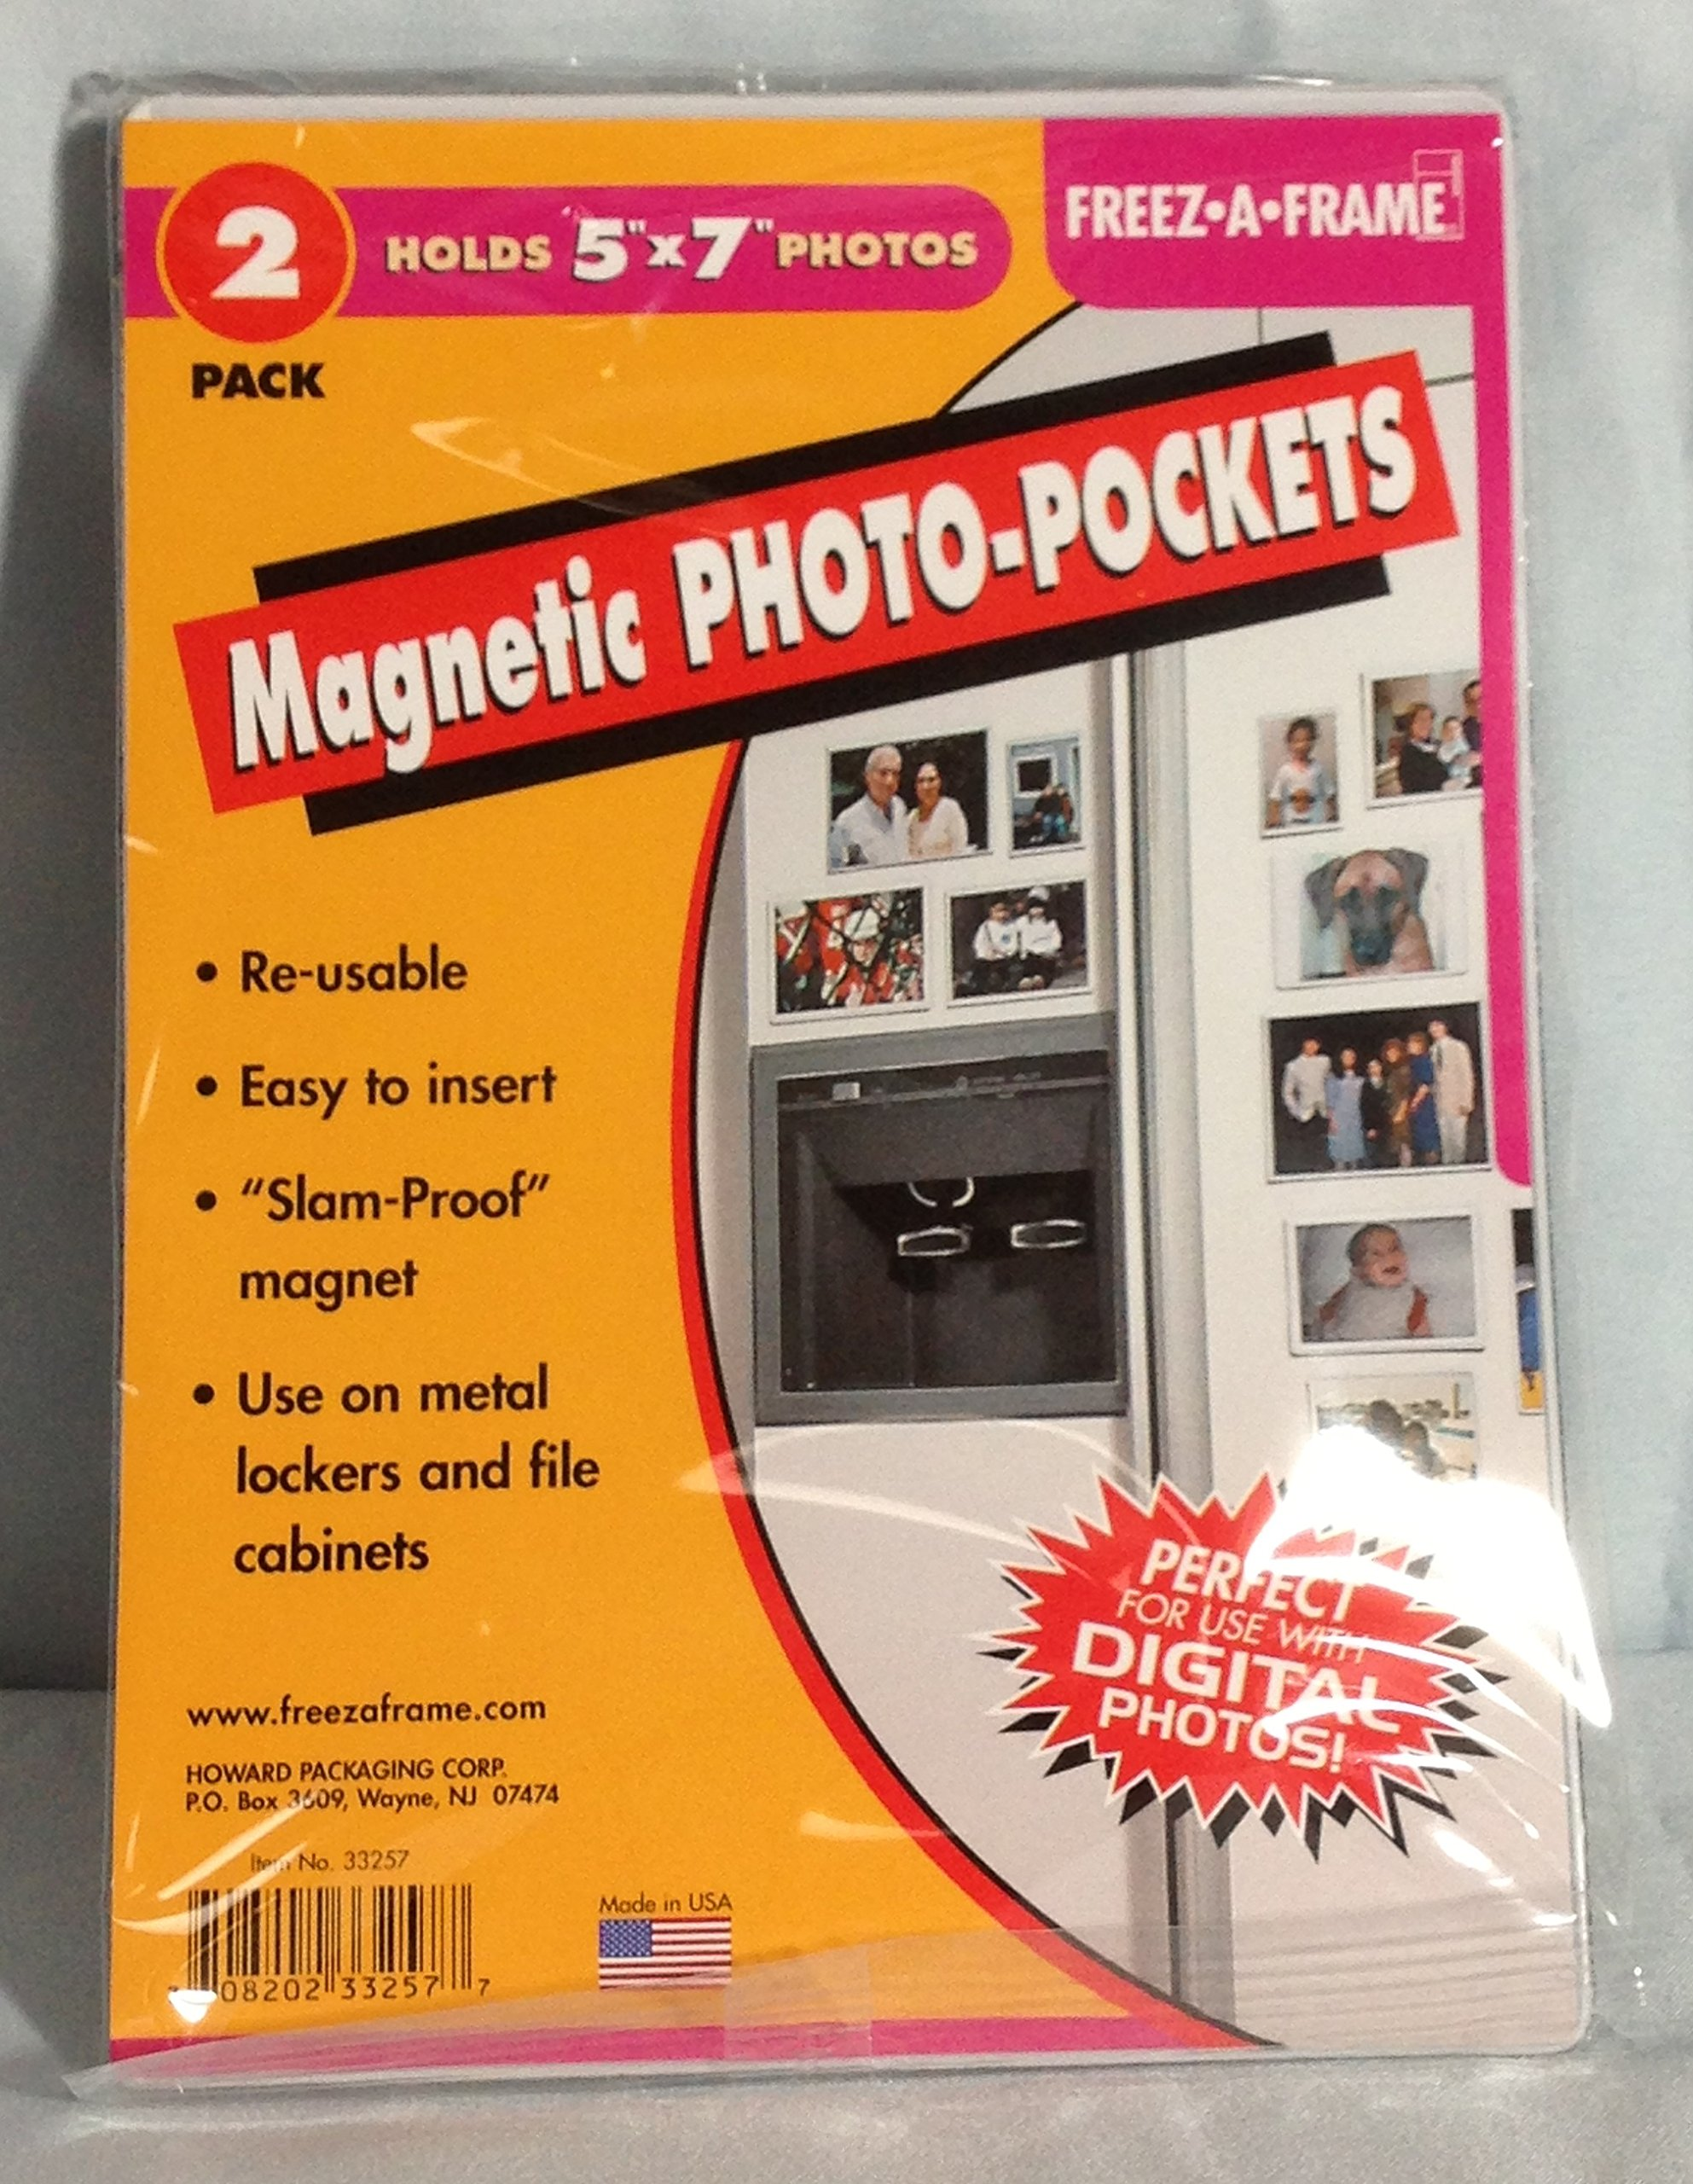 OKSLO Freez-A-Frame 33257 Magnetic 5 x 7 Photo Frame For Refrigerator 5 x 2 Pack - 10